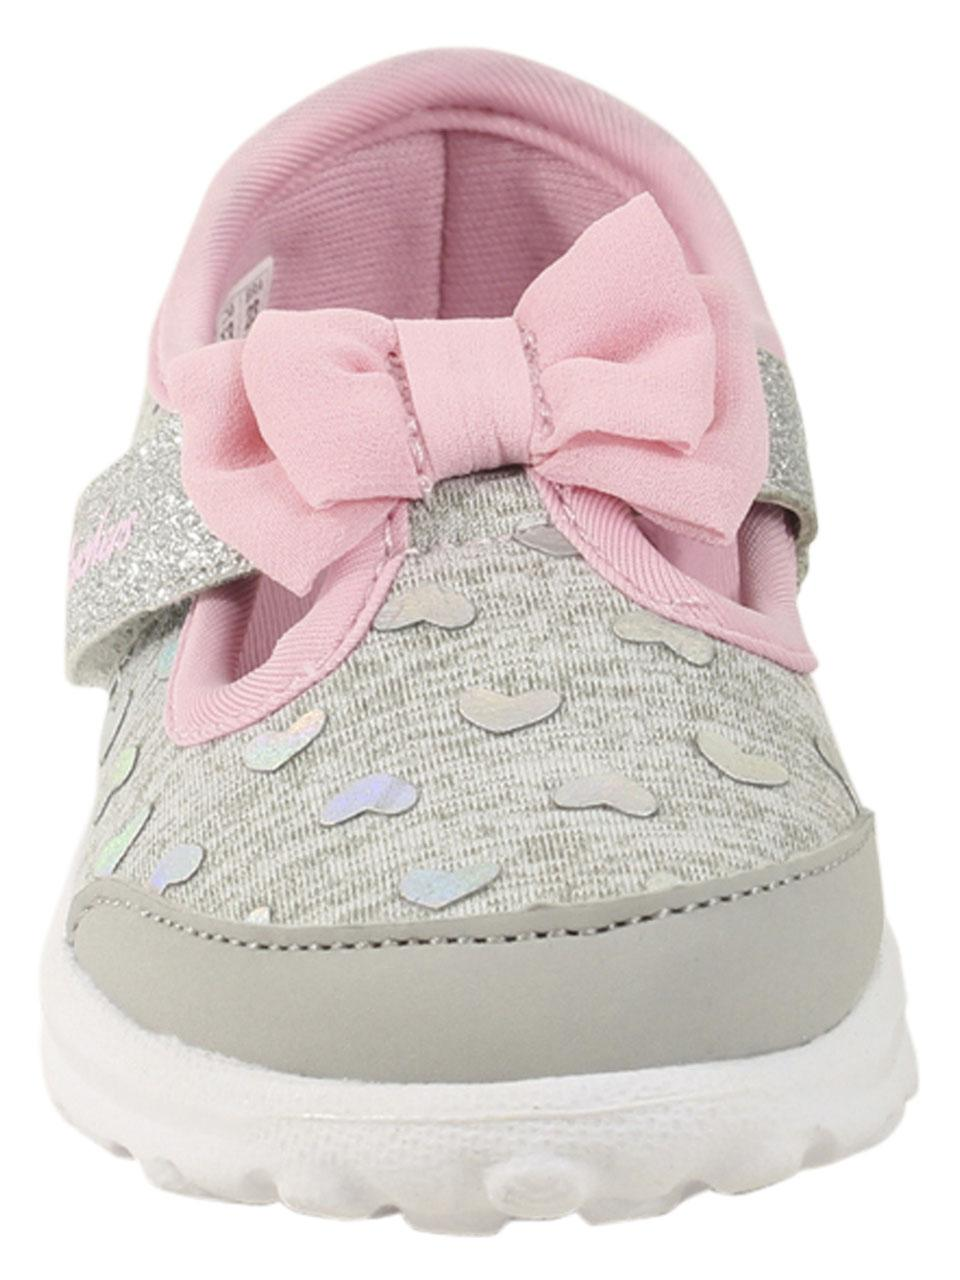 c4fe0e902c7 Skechers Toddler Girl s Go Walk Bitty Hearts Memory Foam Loafers Shoes by  Skechers